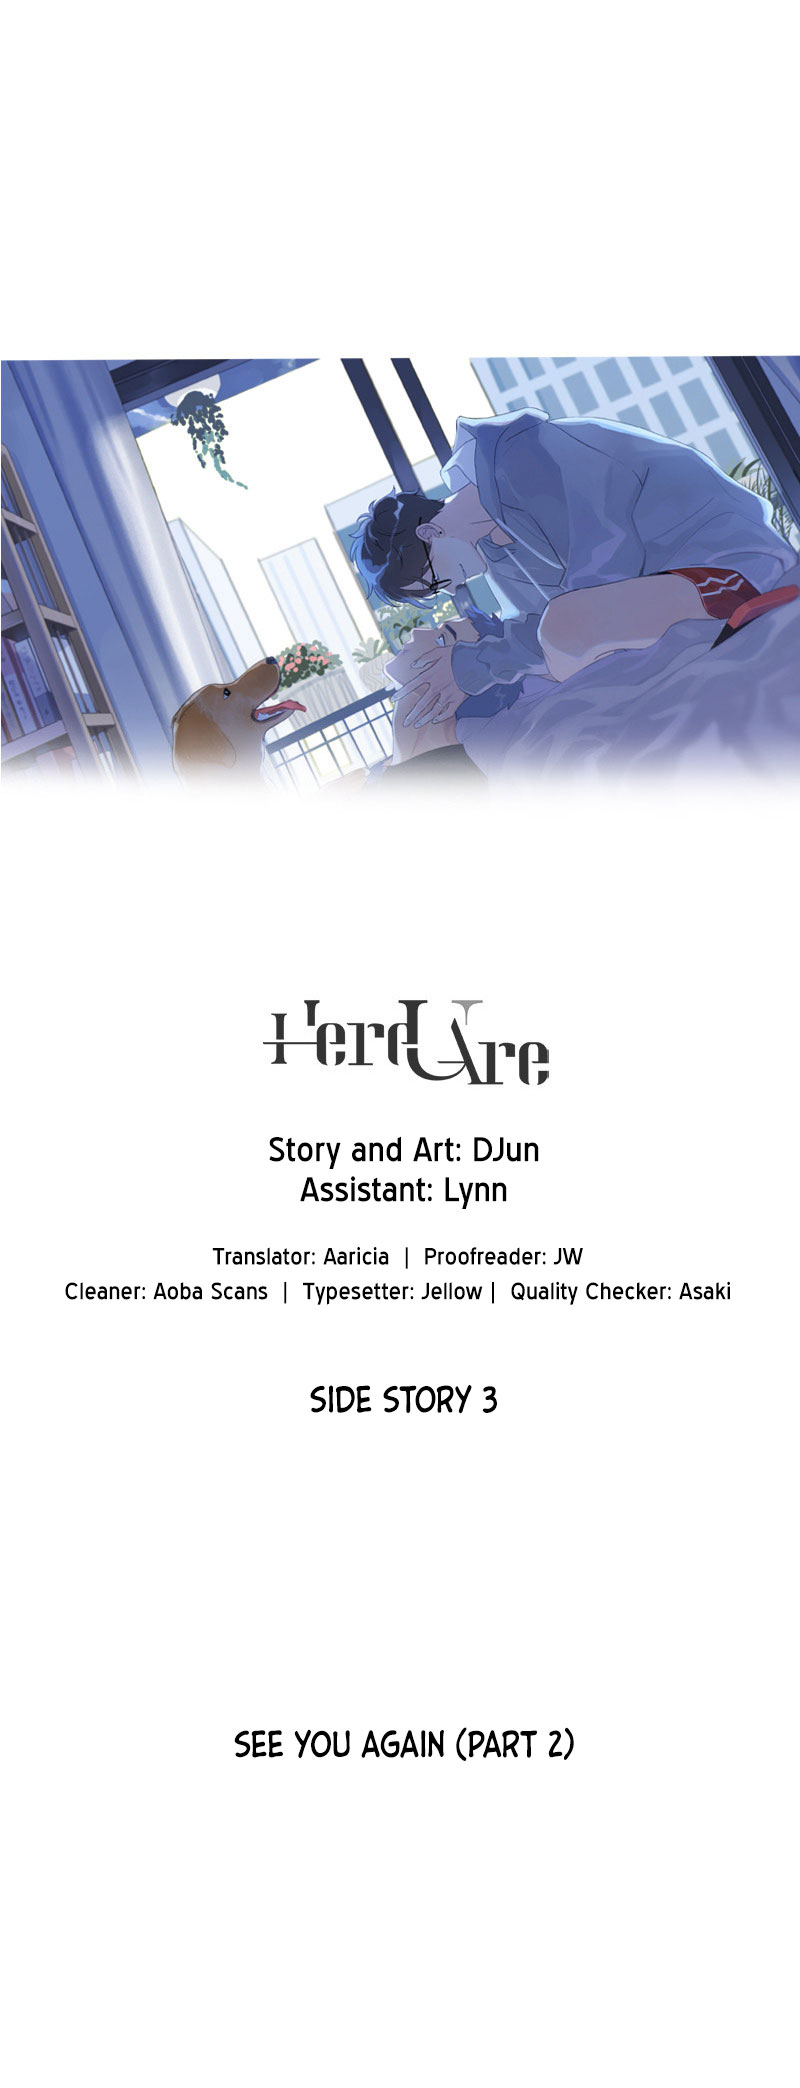 Here U are, Chapter 137: Side Story 3 (Part 2), image #1